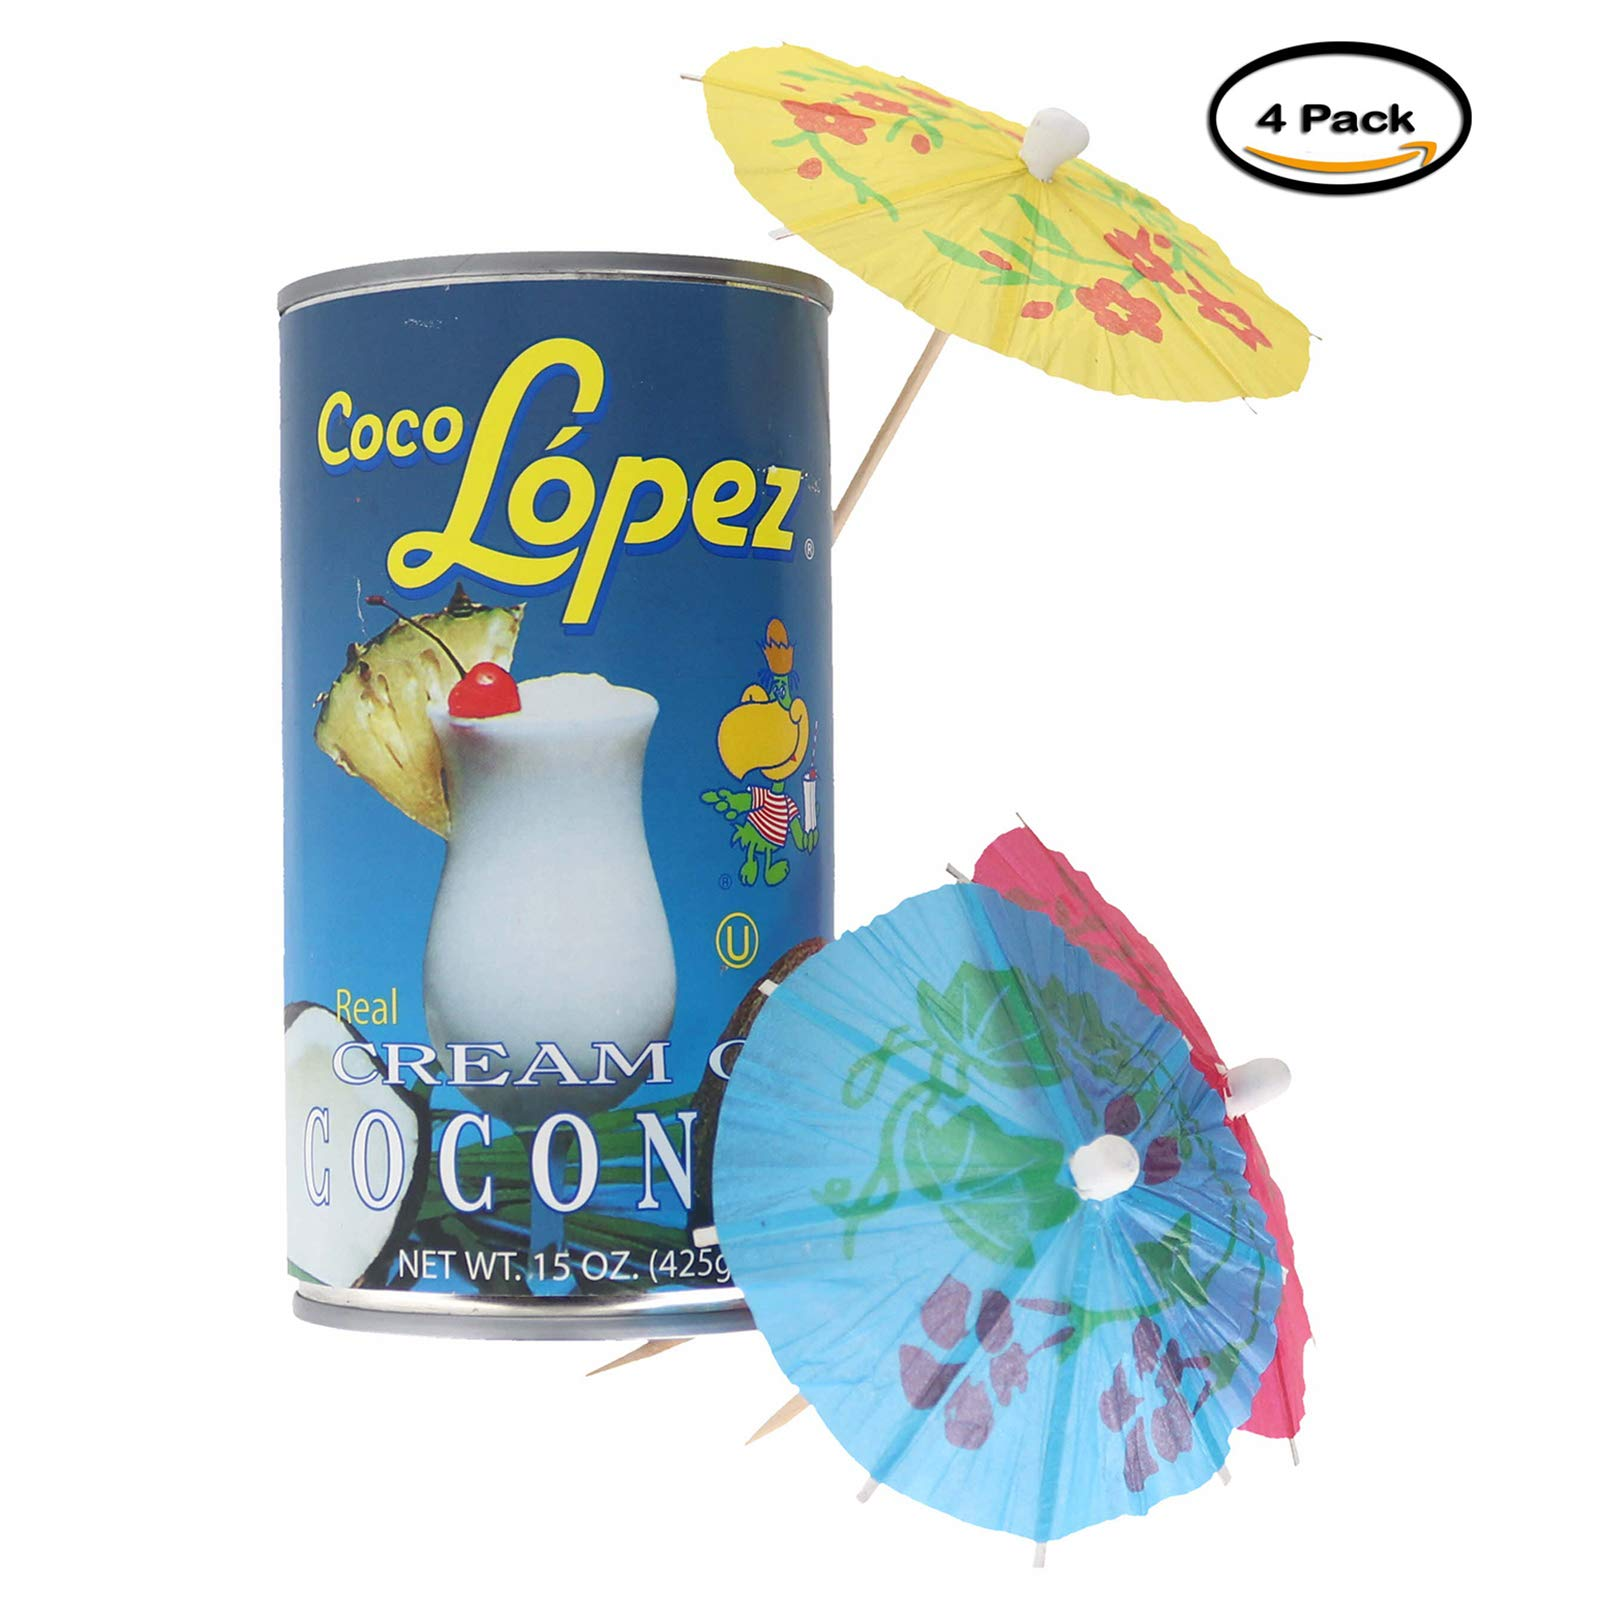 Coco Lopez - Real Cream of Coconut - 15 Ounce Can - Original Fresh Authentic Coconut Cream (Pack Of 4) by Coco Lopez (Image #3)